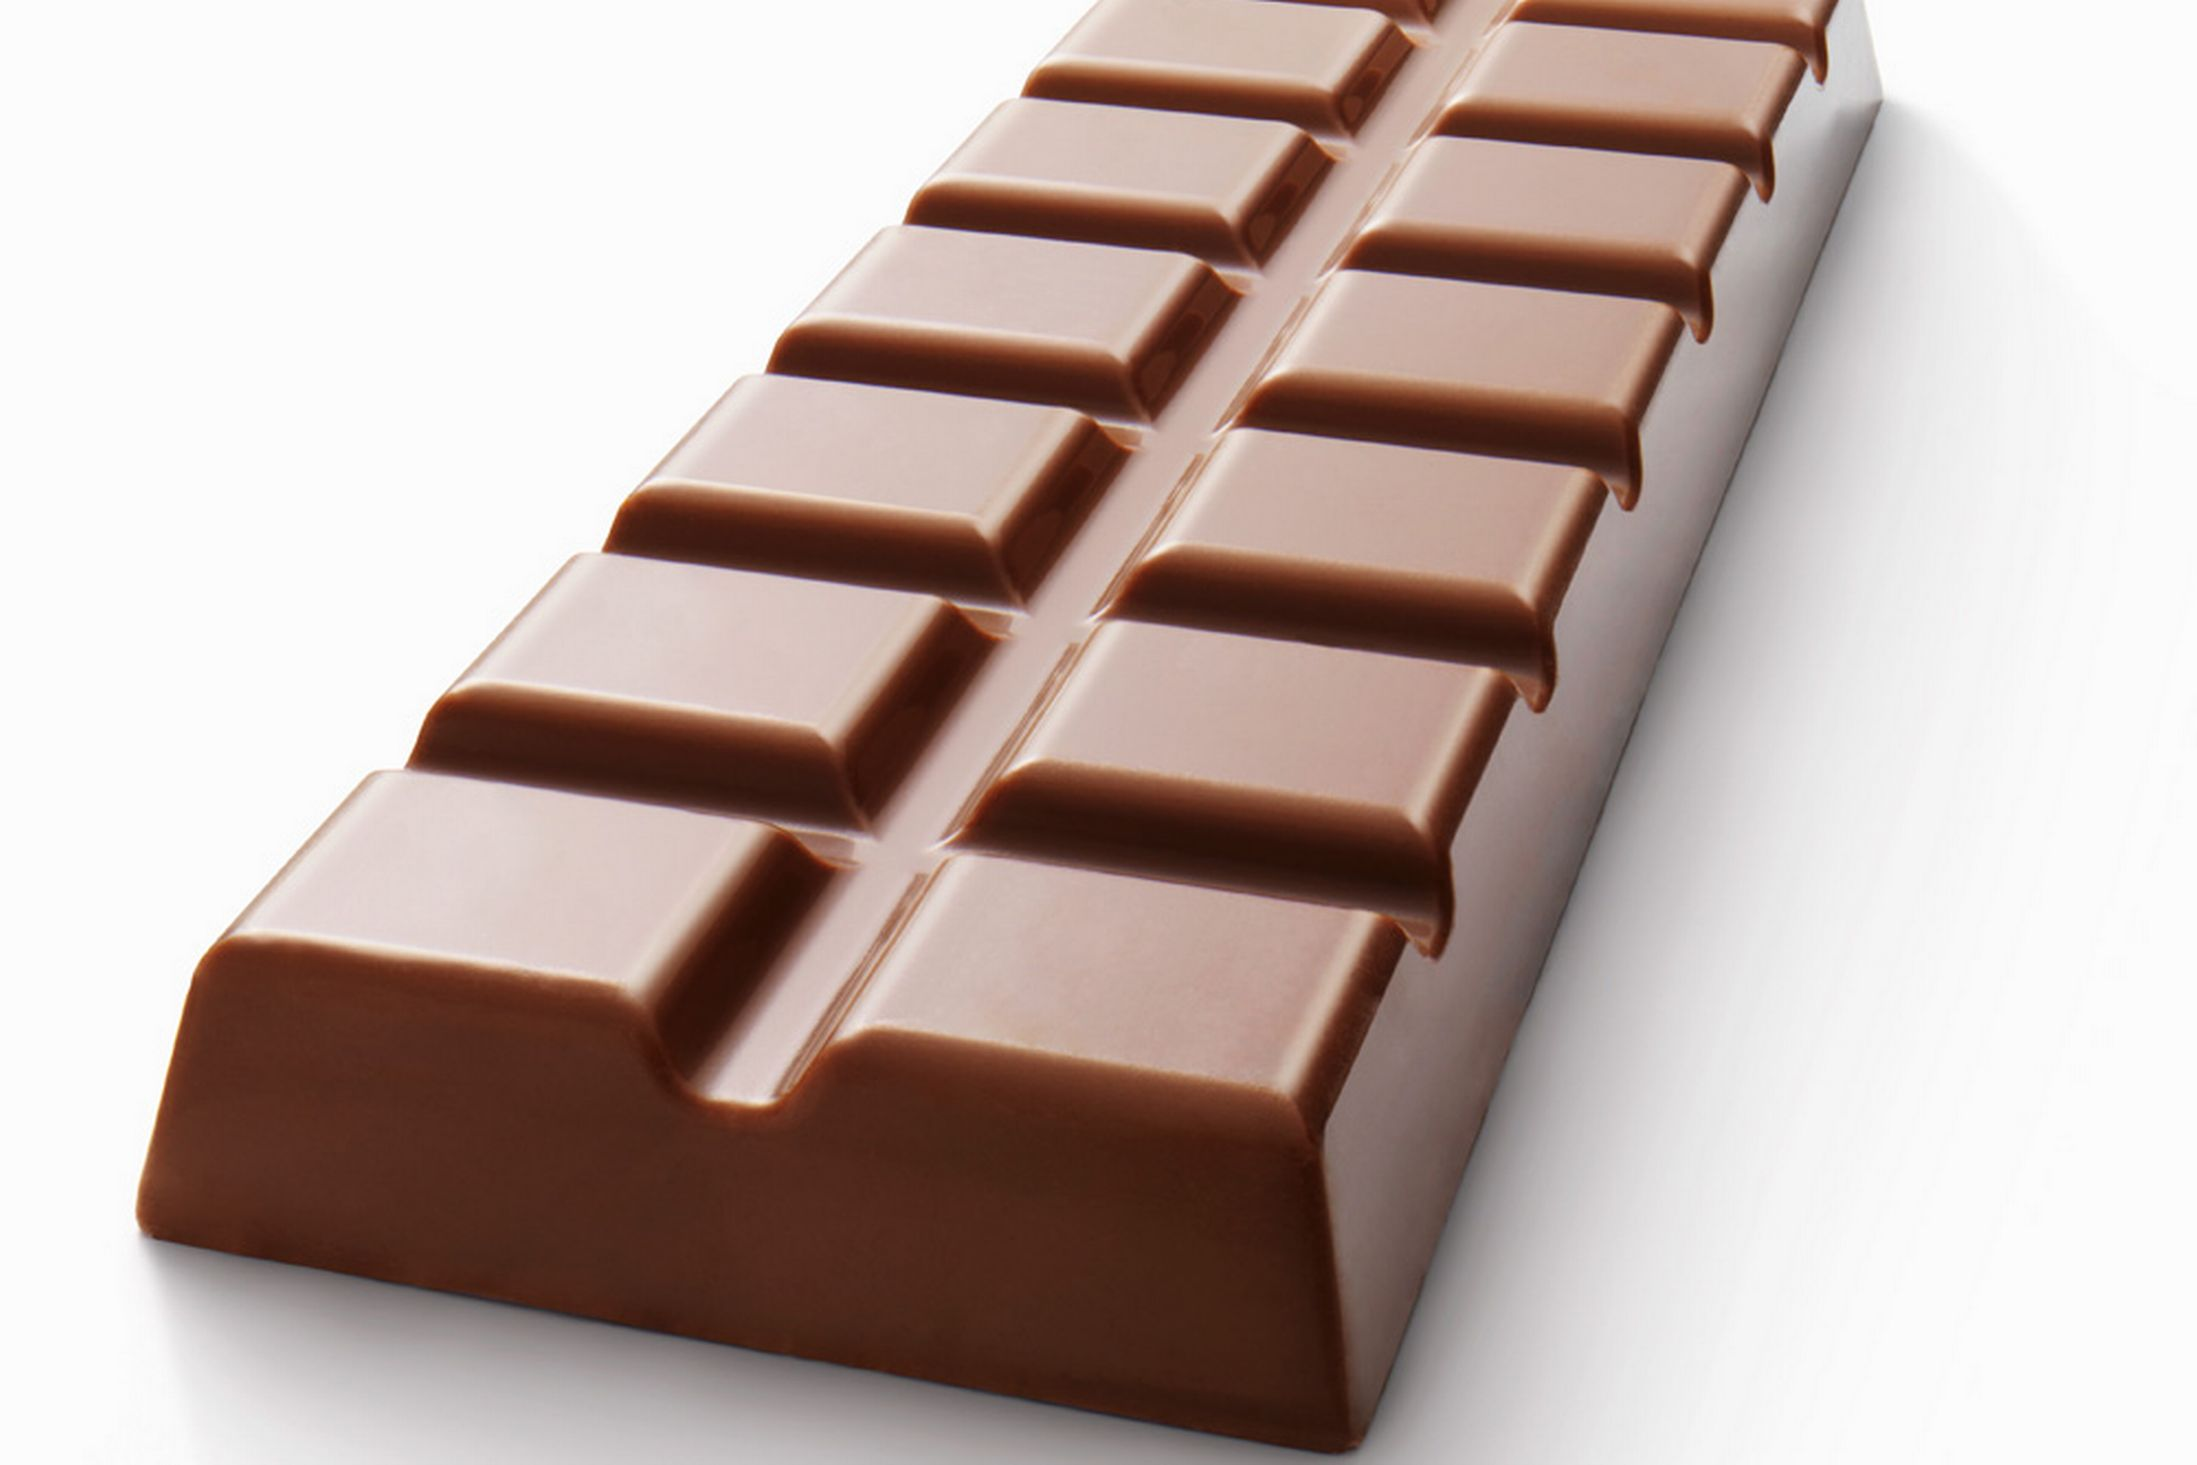 Chocolate-Bar-cc-search